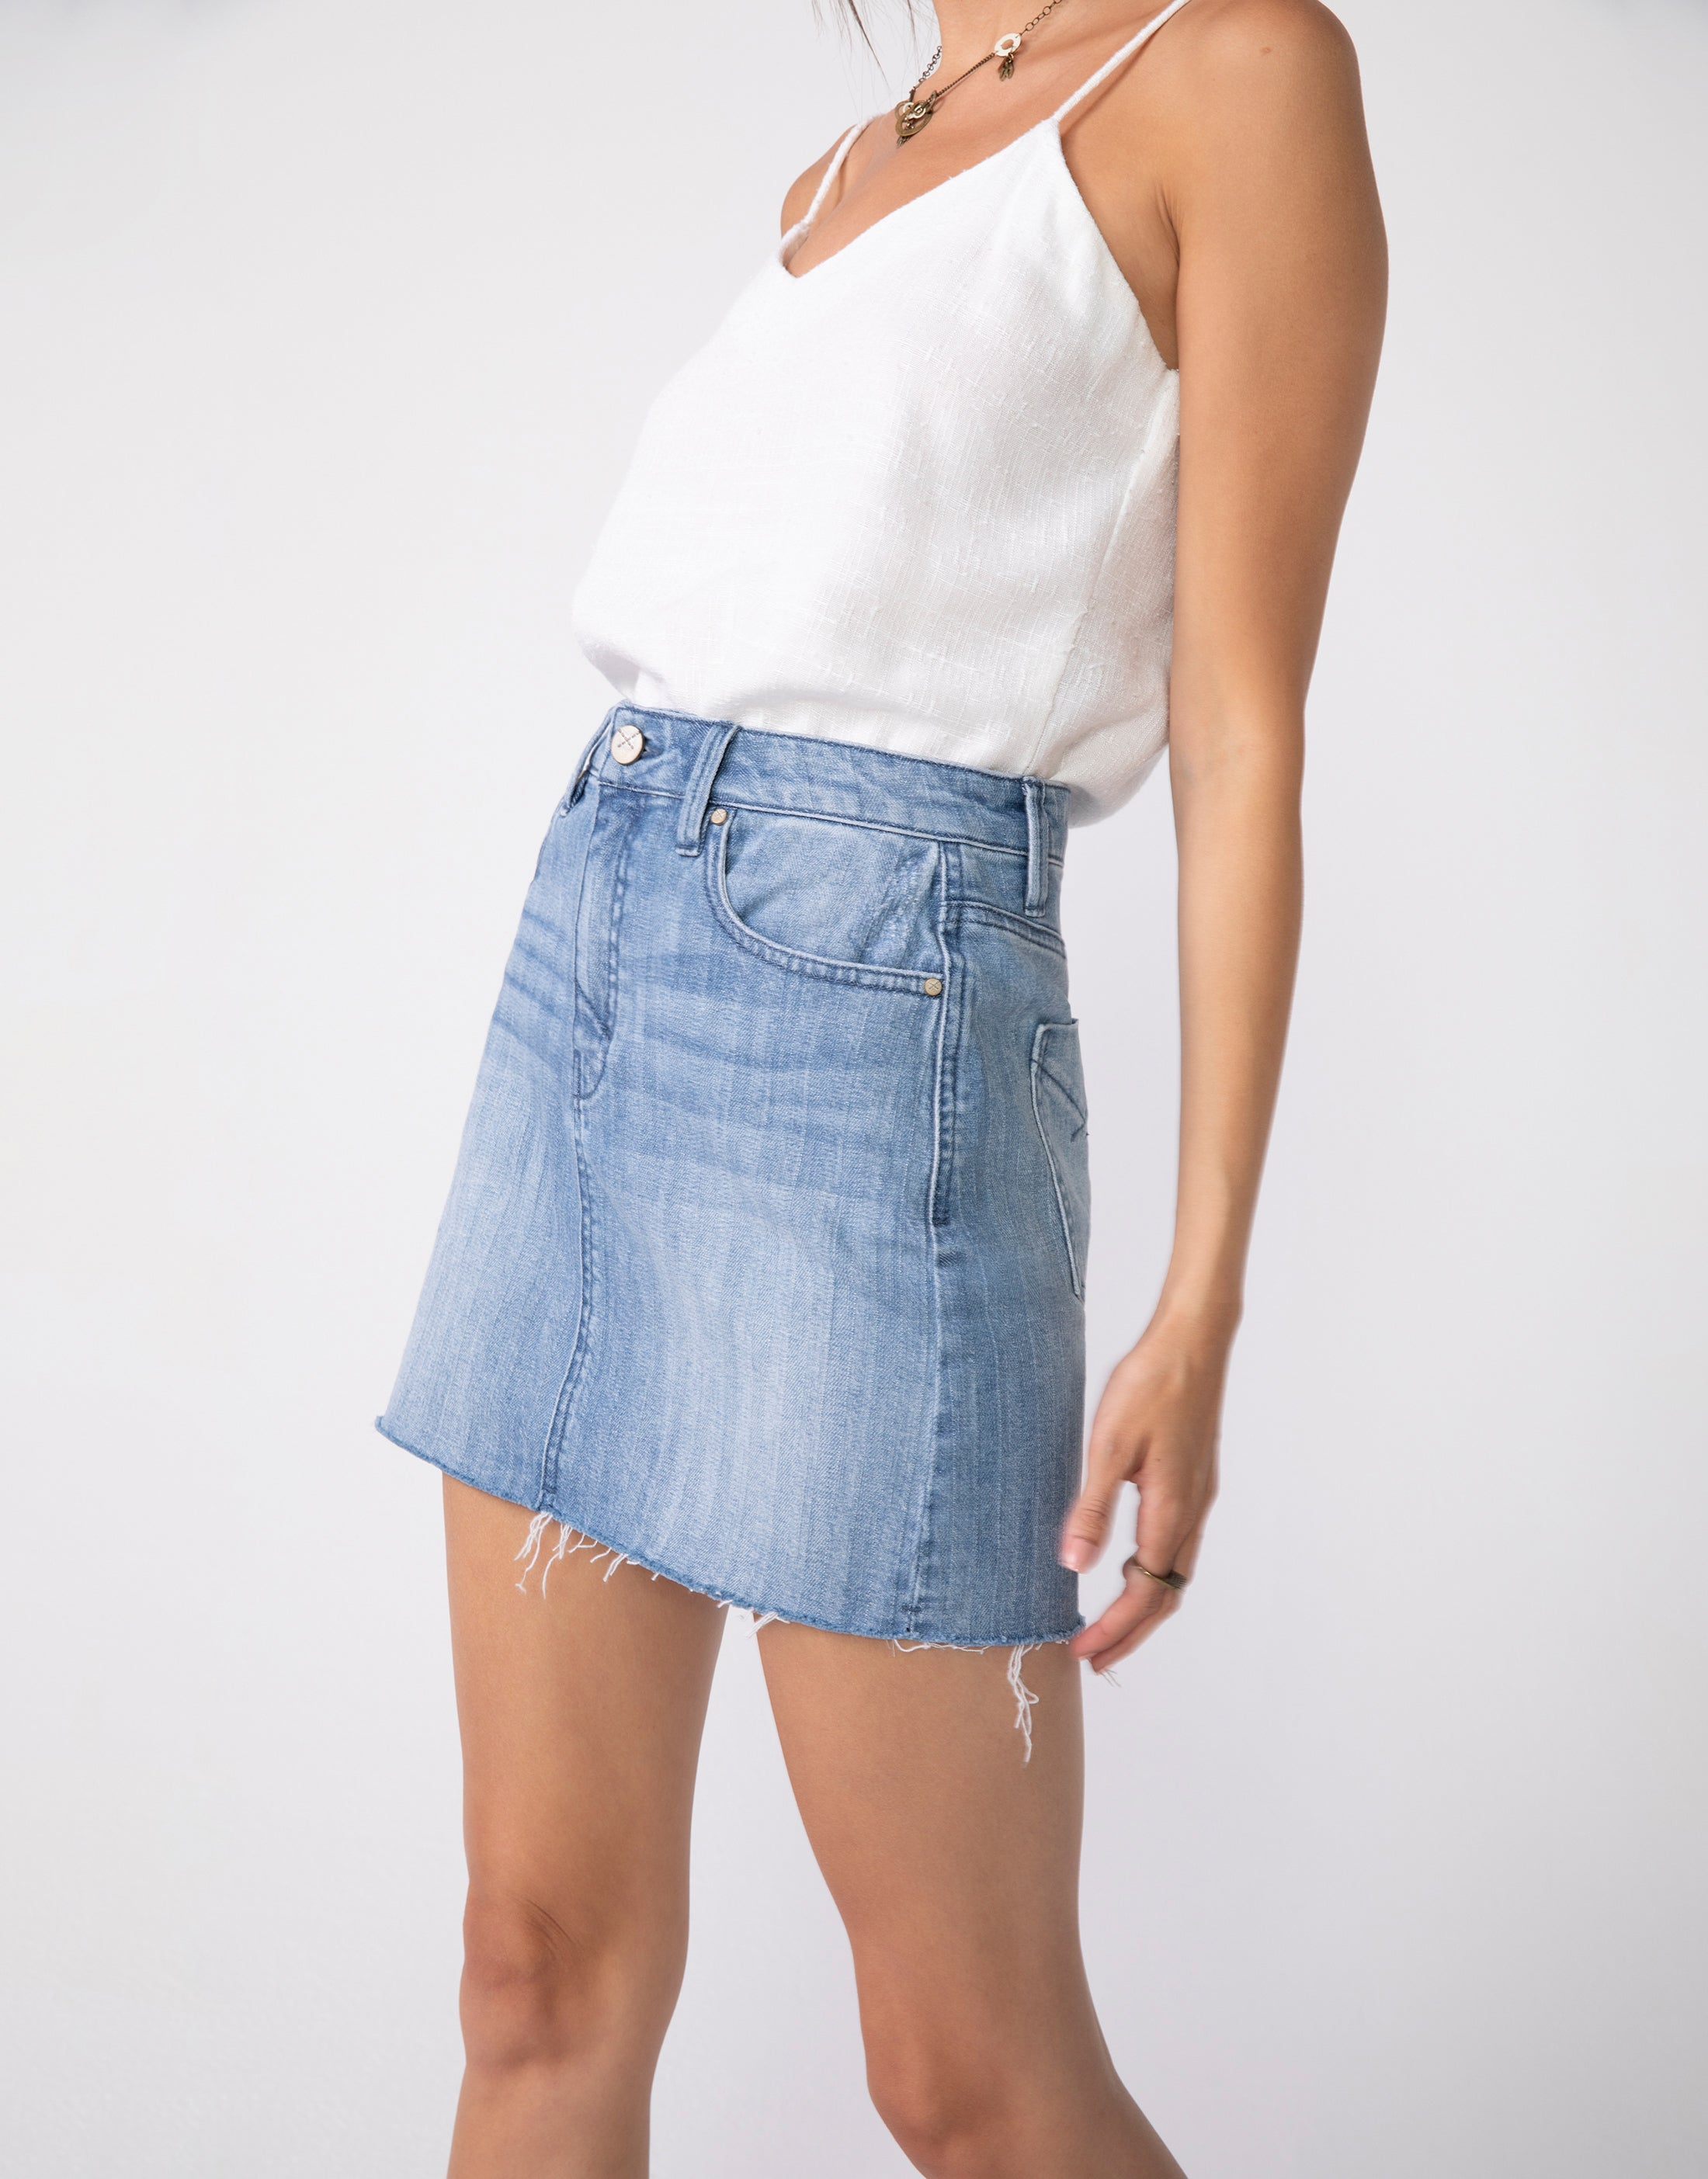 NICO High Waist Mini Skirt in Faded Chevy